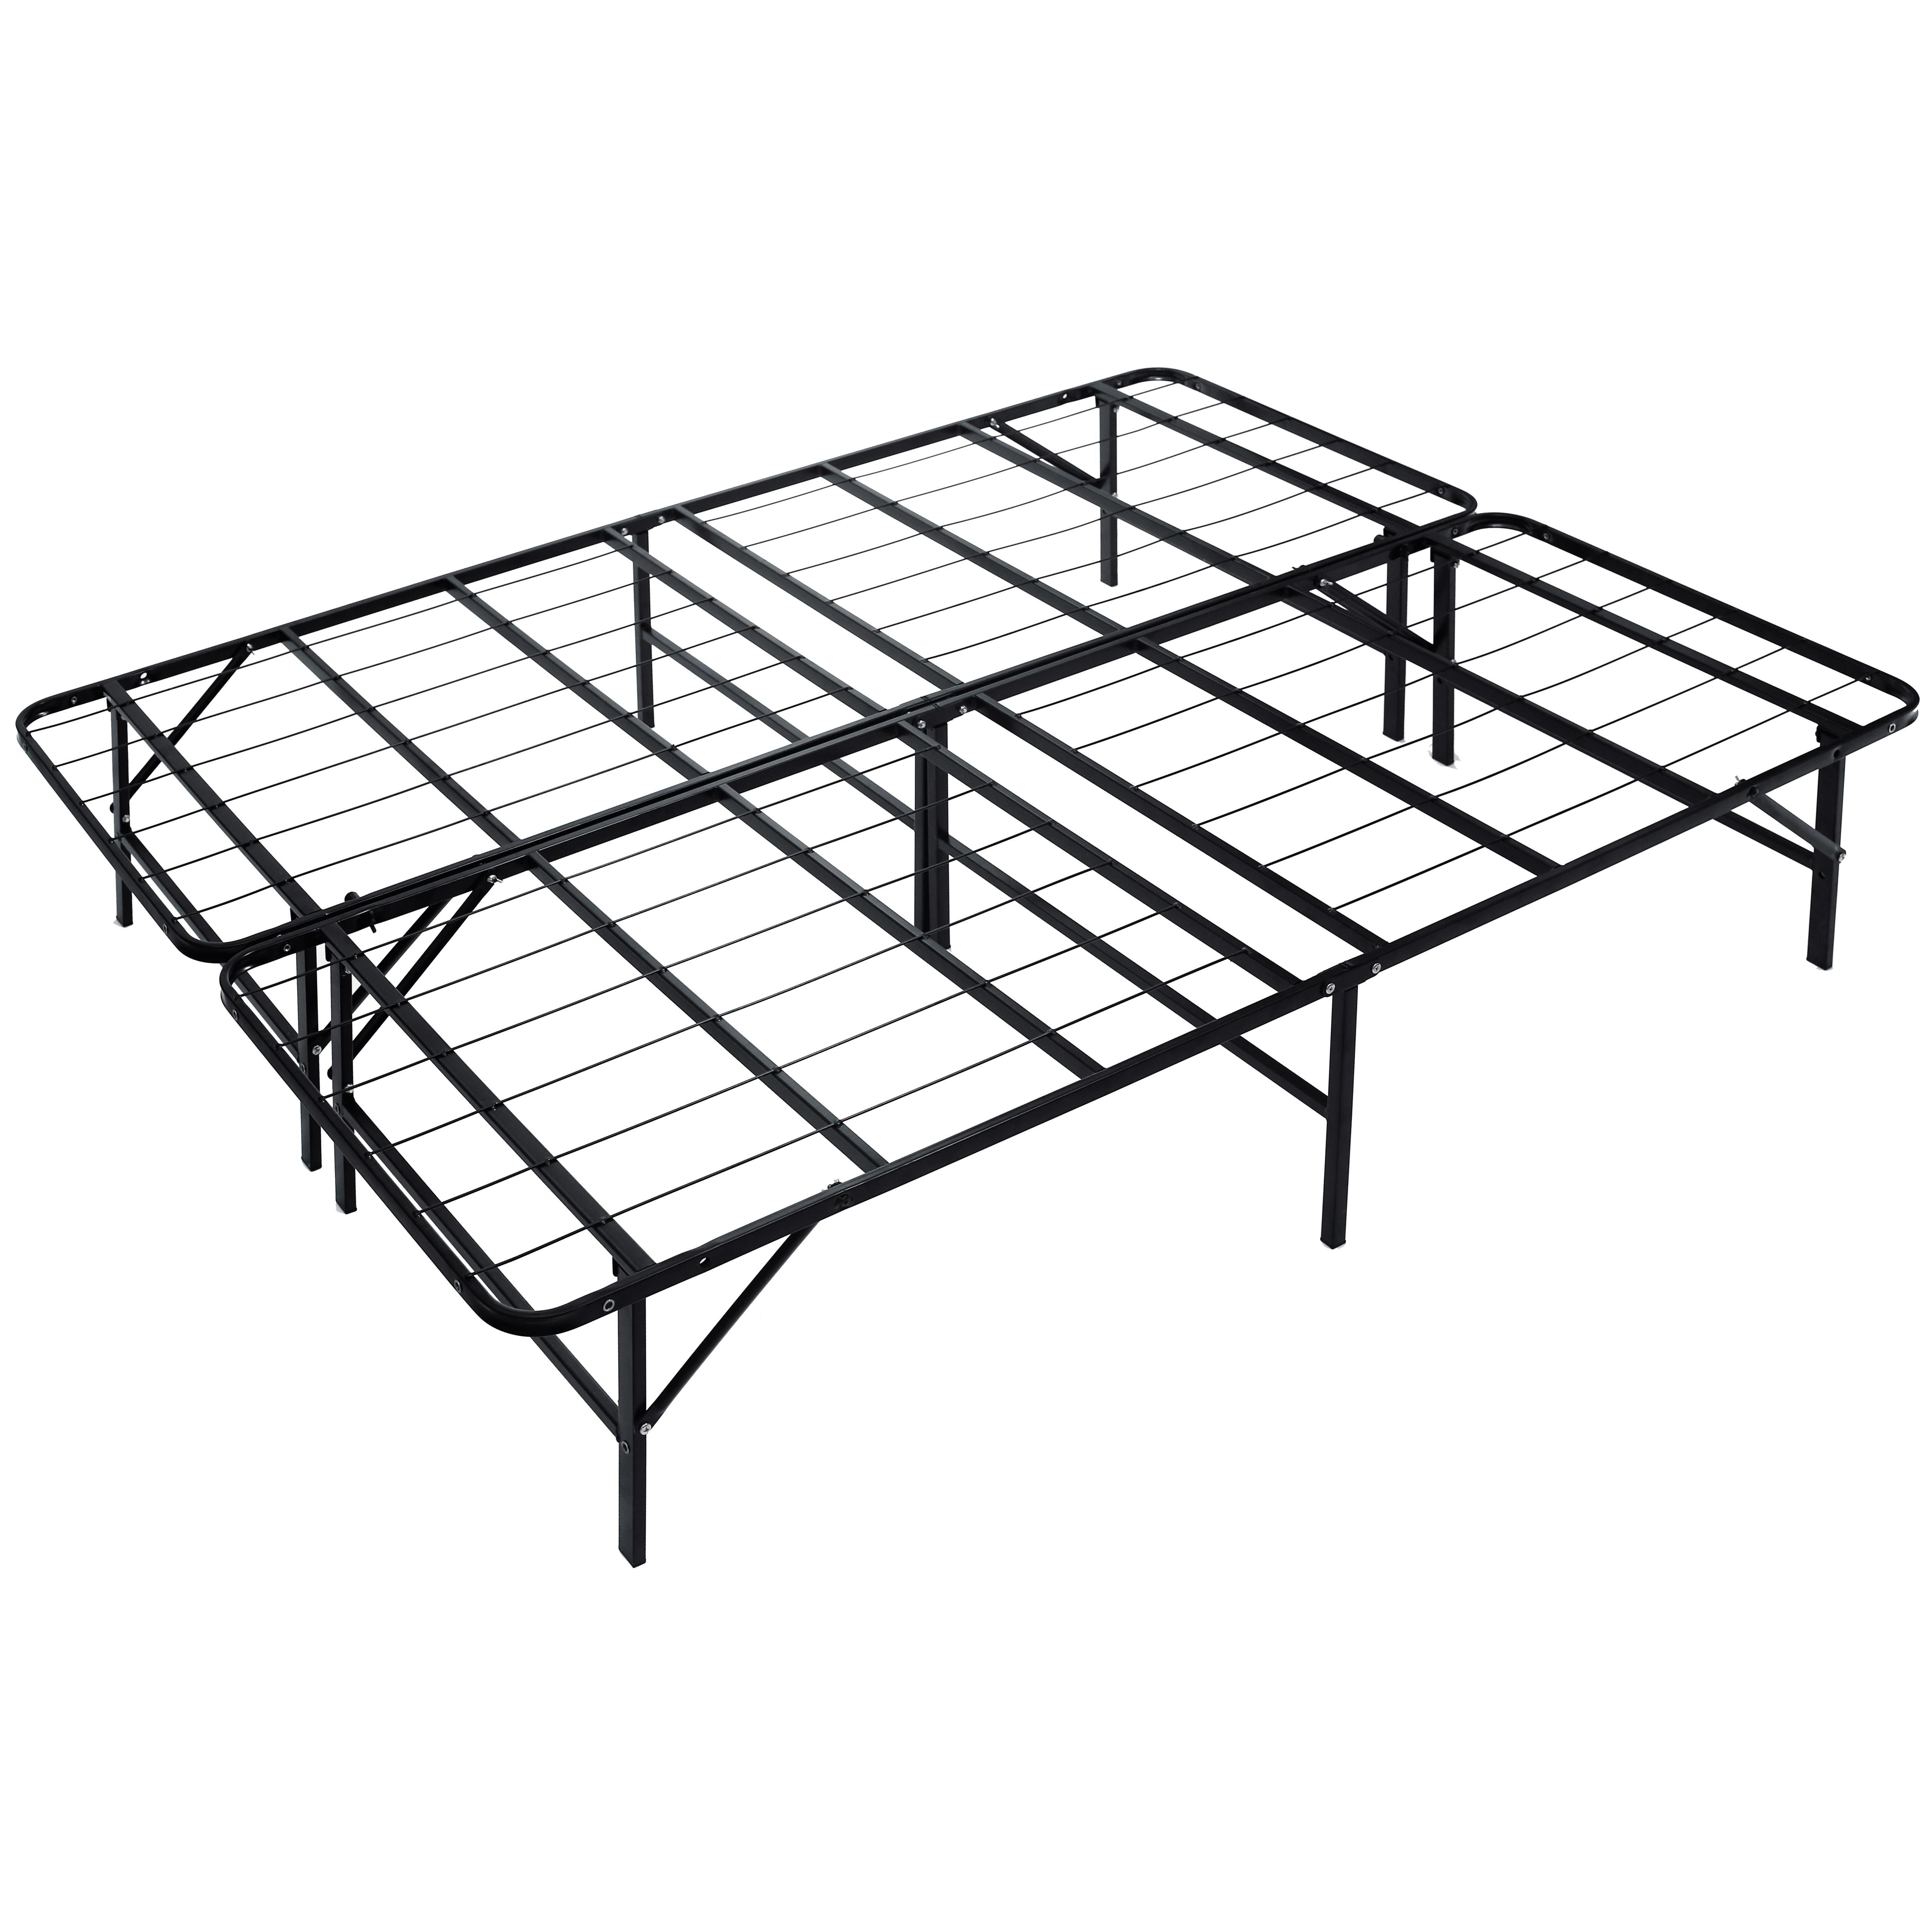 Heavy Duty Queen Size Platform Bed Frame $69 99 Use Coupon Code